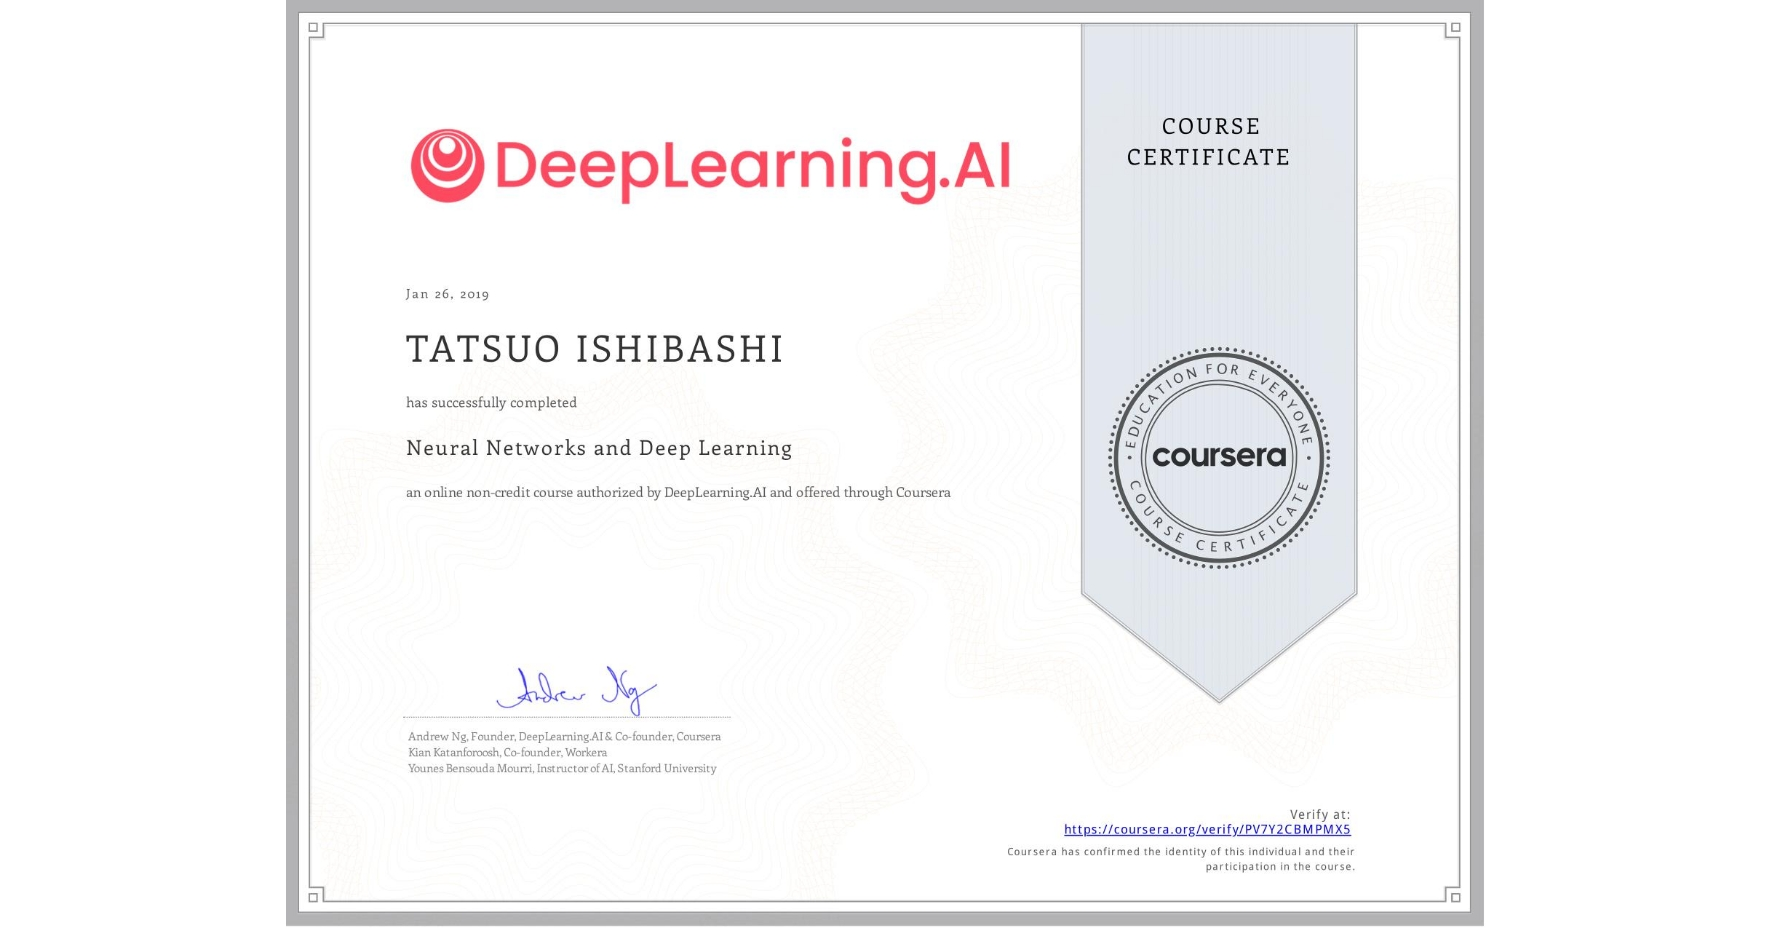 View certificate for TATSUO ISHIBASHI, Neural Networks and Deep Learning, an online non-credit course authorized by DeepLearning.AI and offered through Coursera